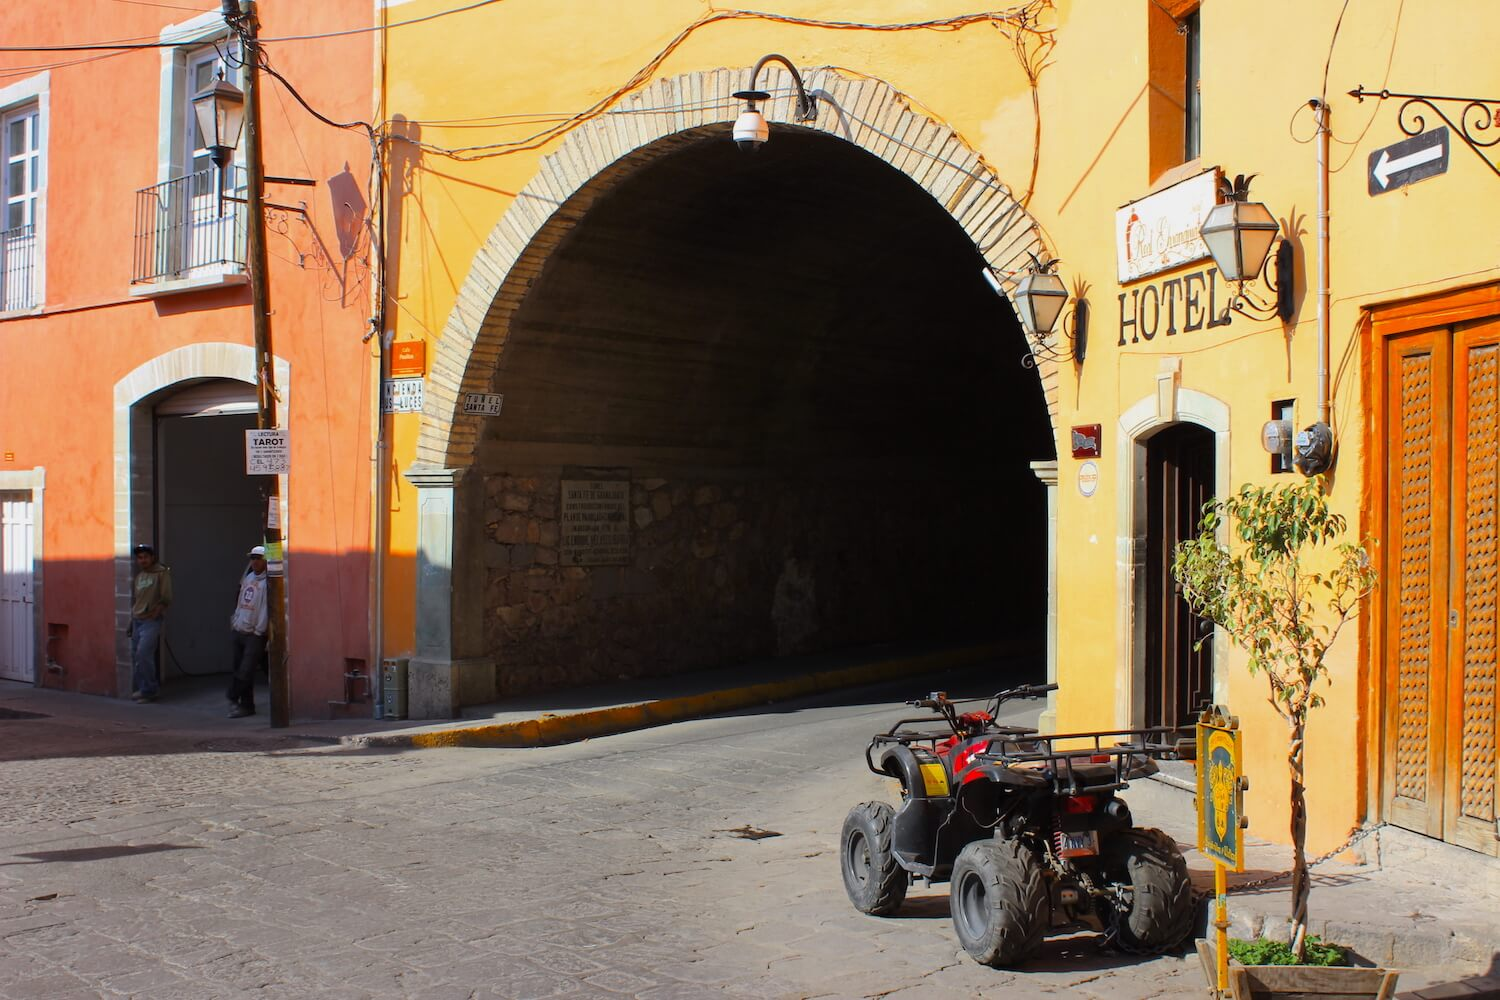 guanajuato tunnels that are under the city